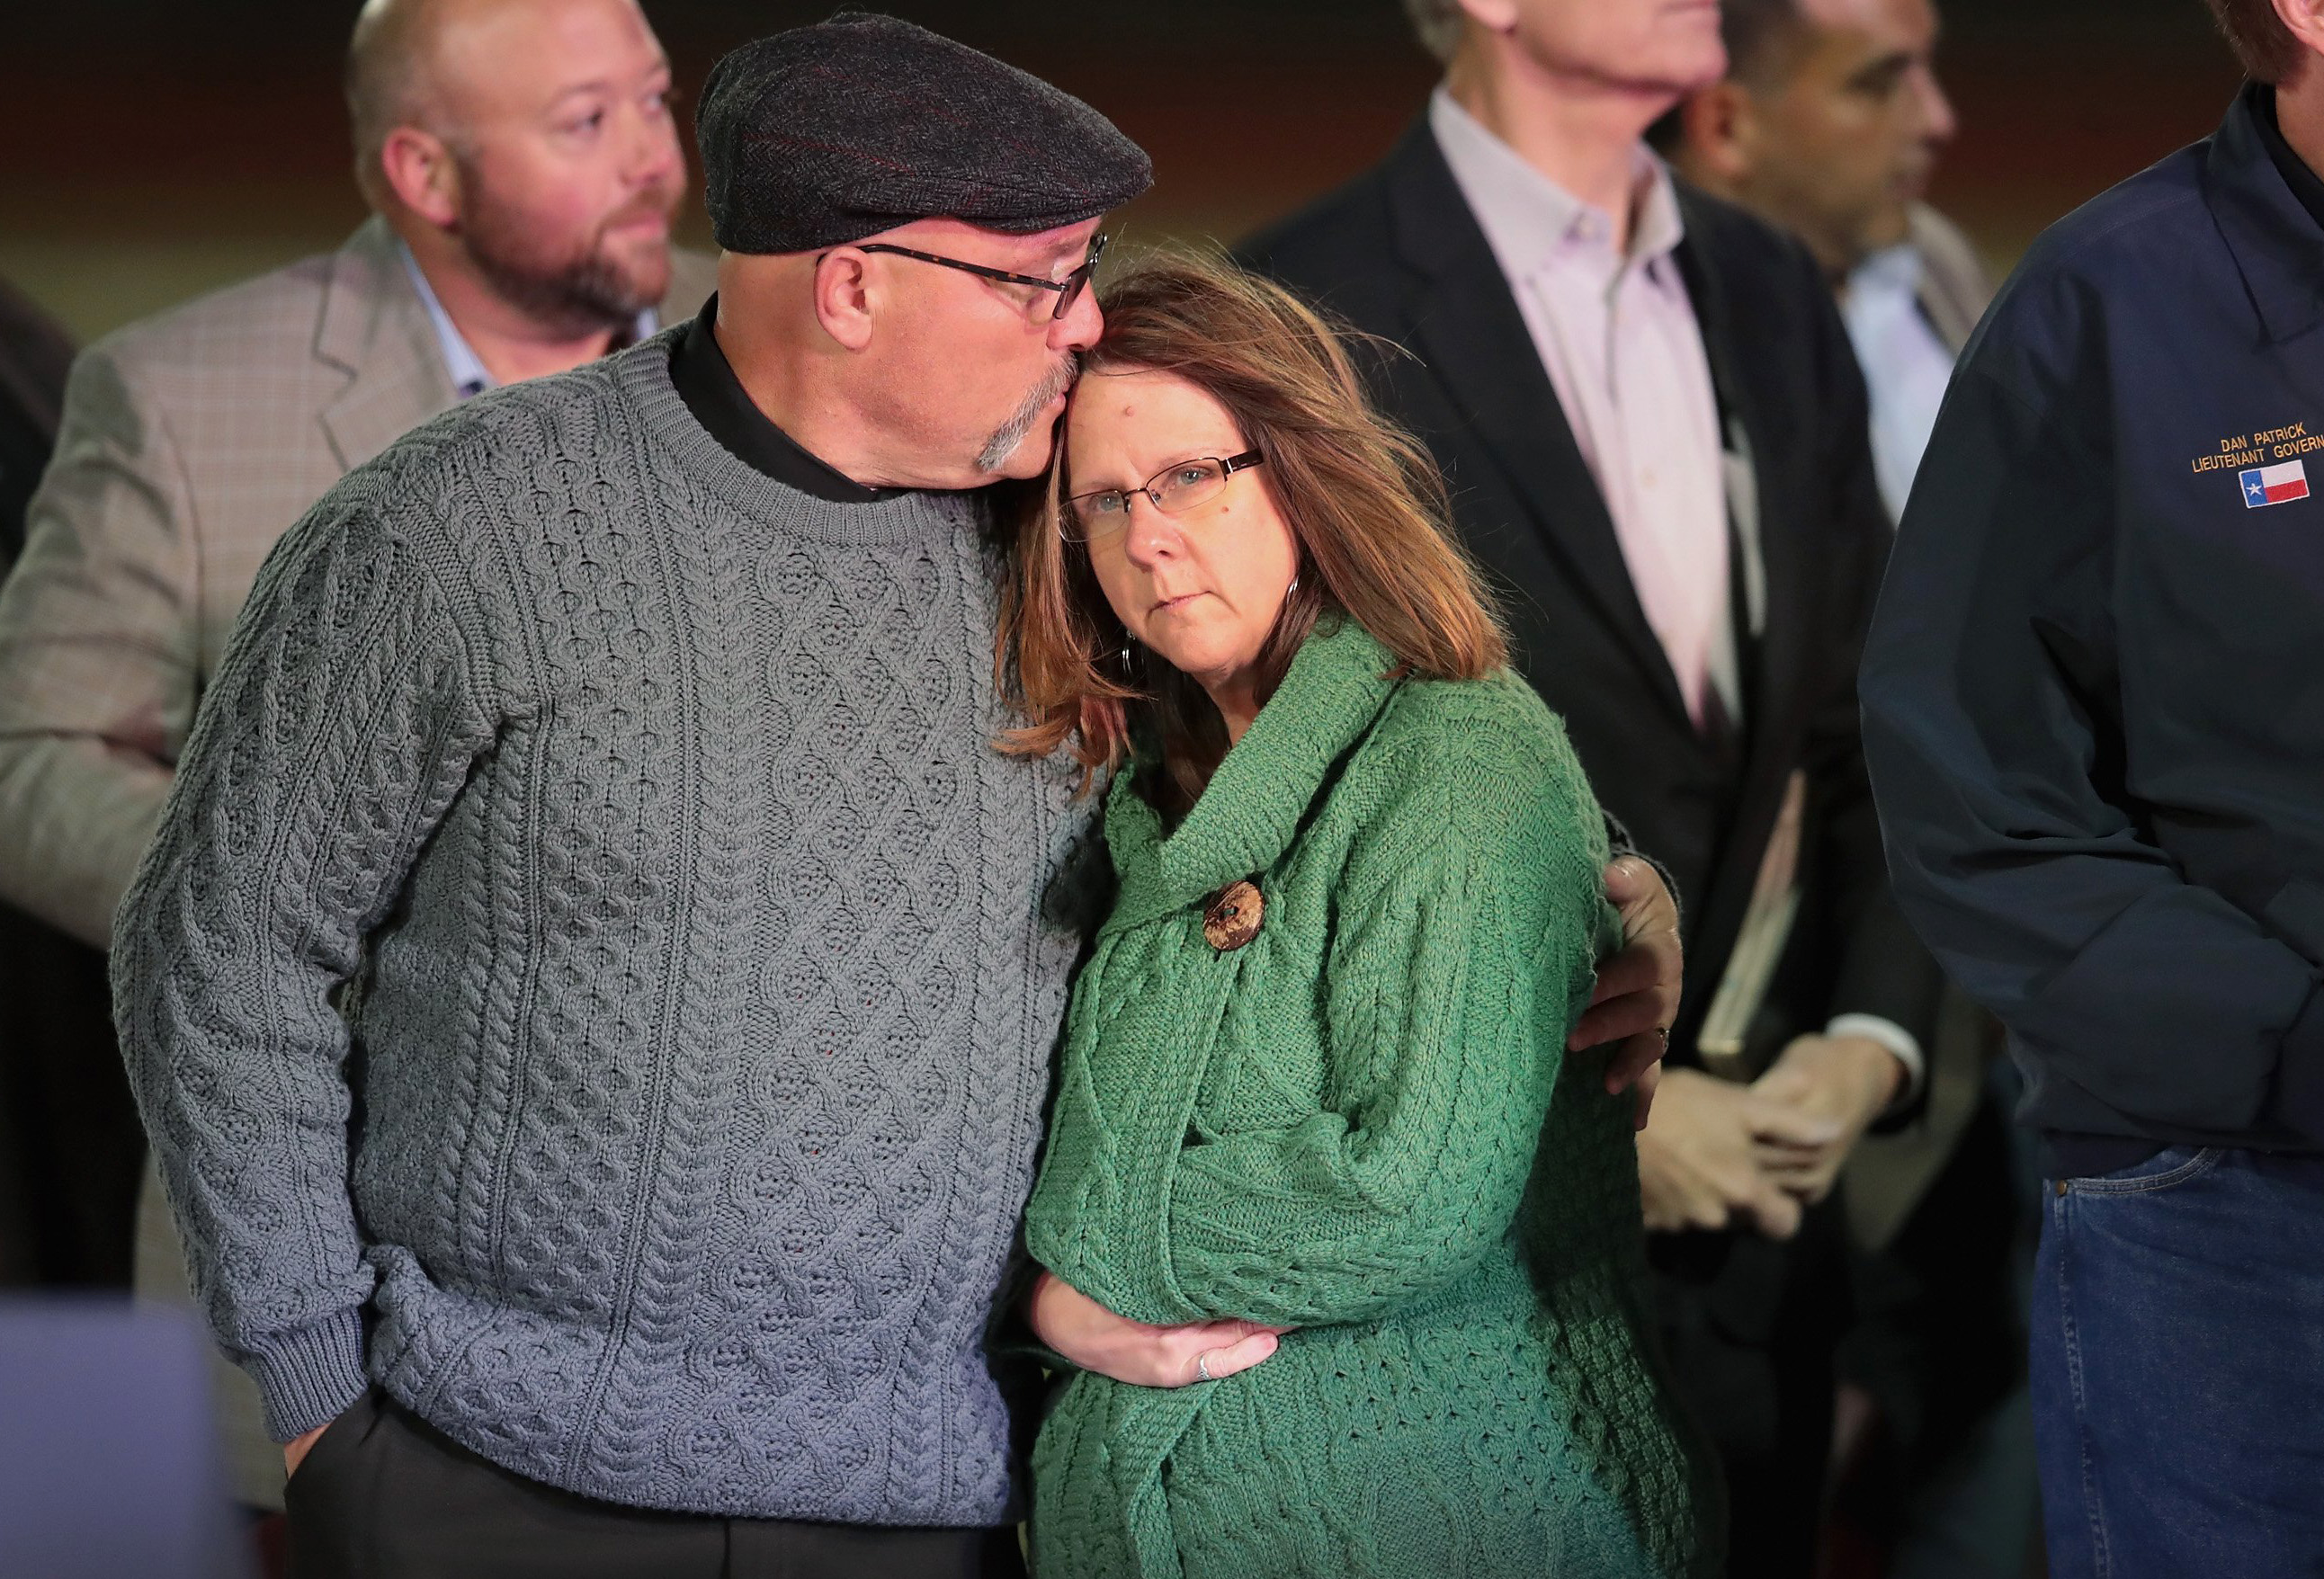 Image: Pastor Frank Pomeroy comforts his wife Sherri during a memorial service for the victims of the First Baptist Church of Sutherland Springs shooting